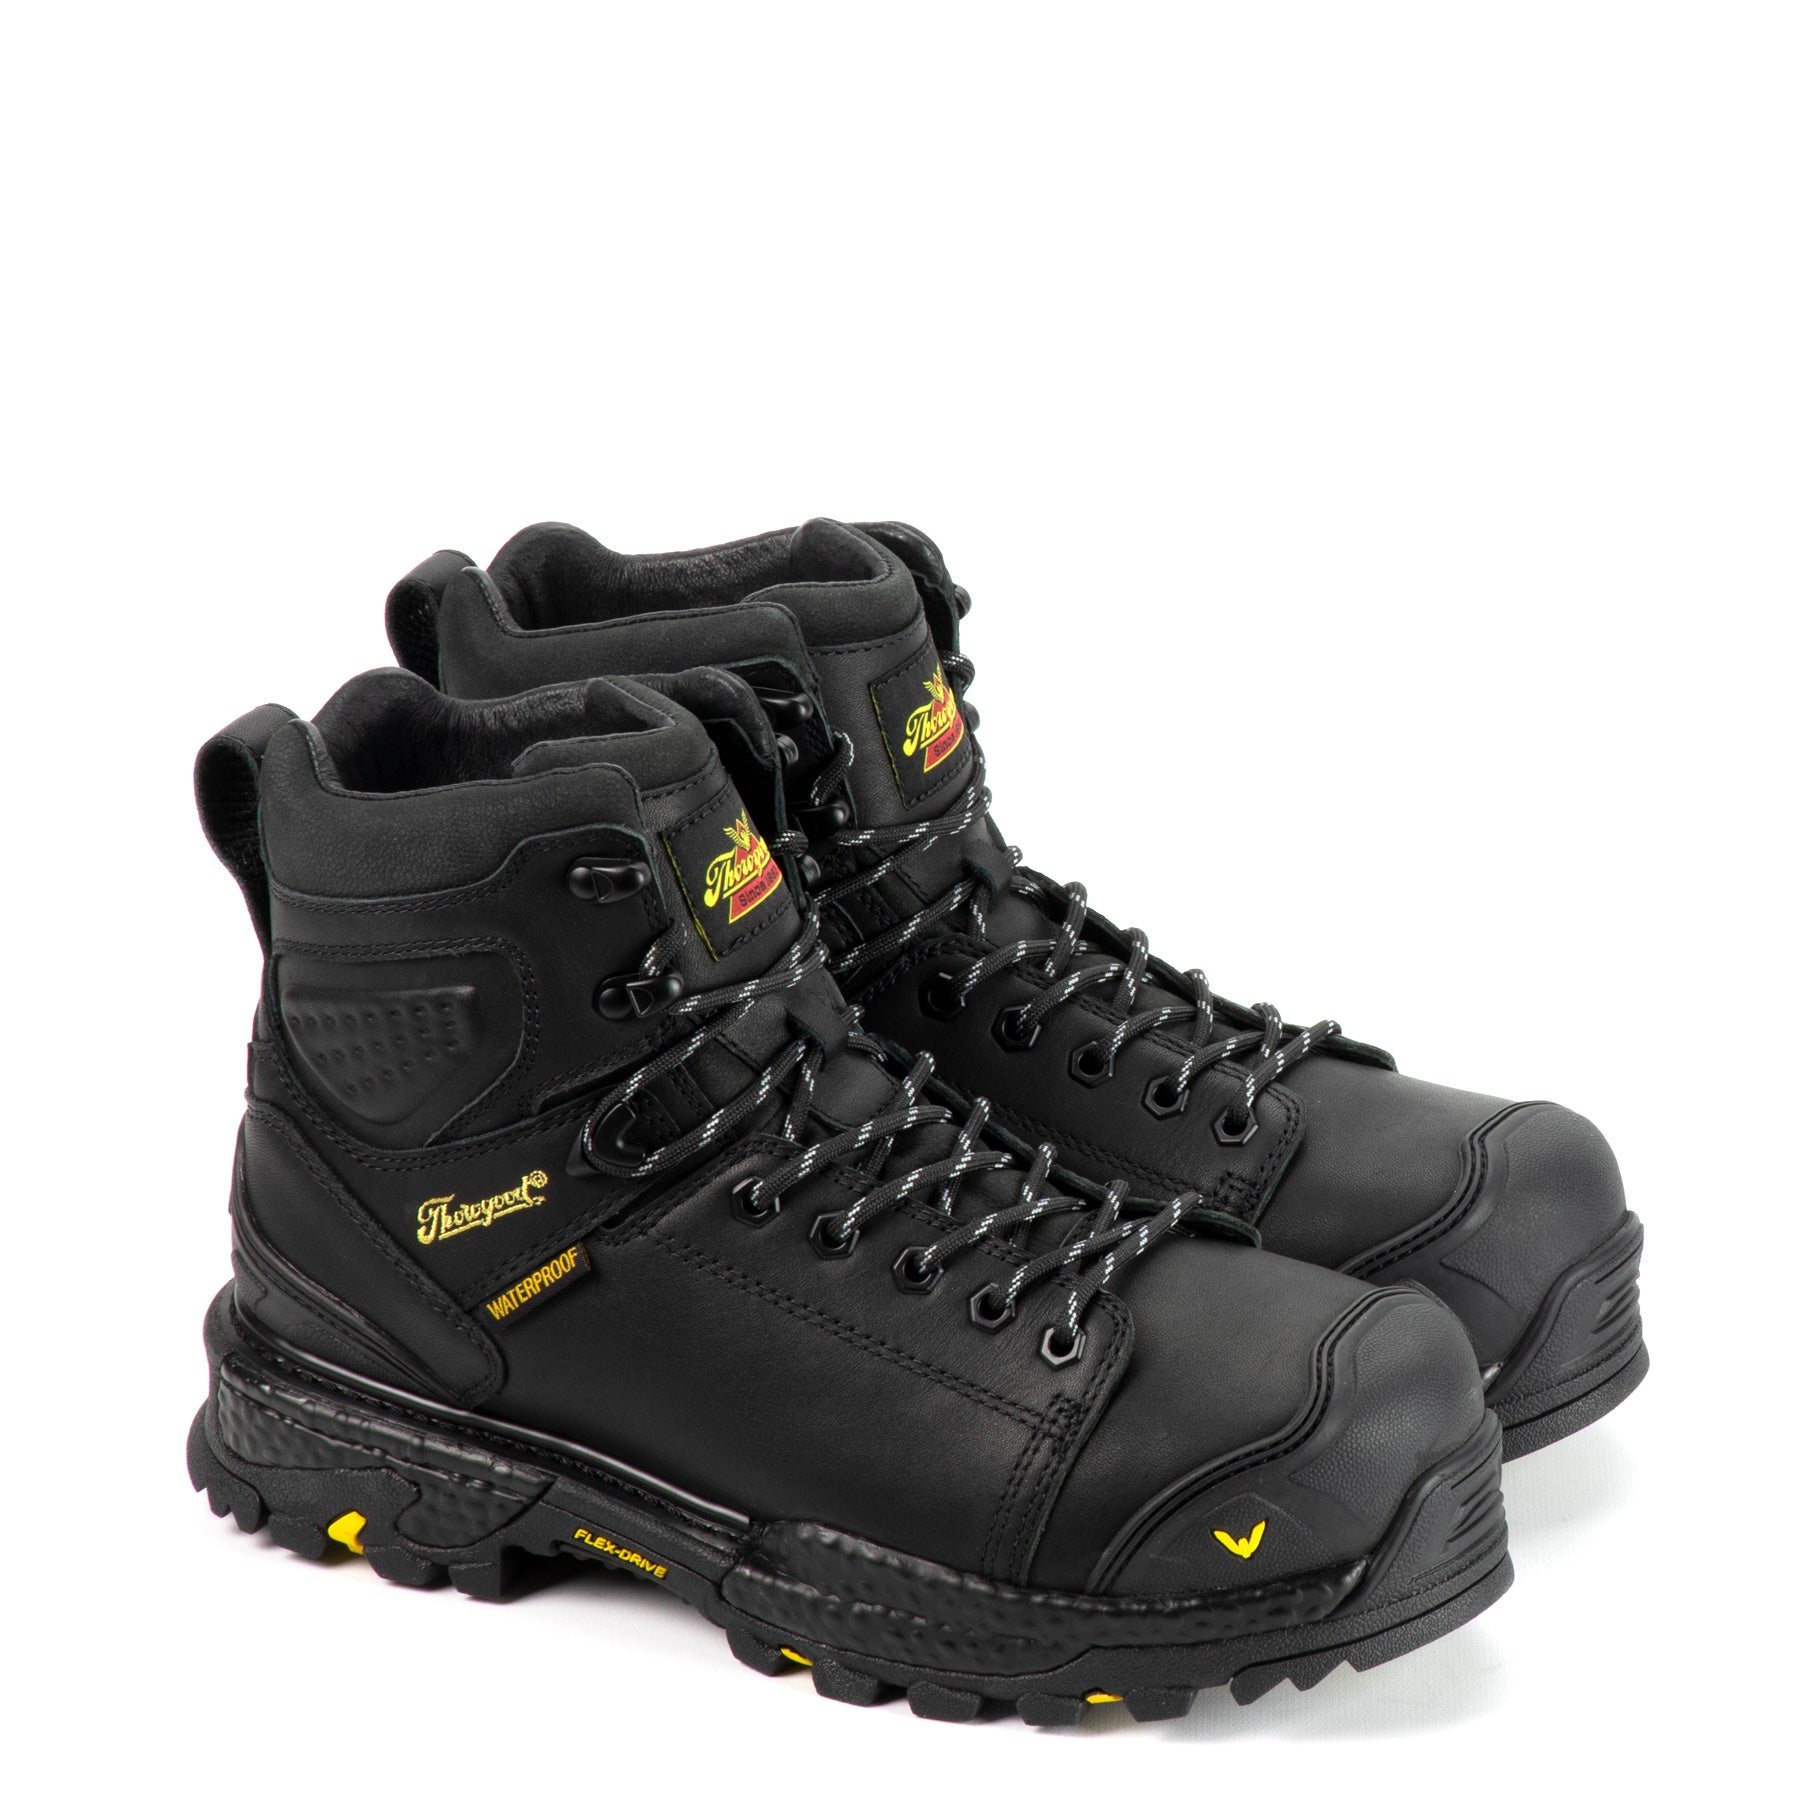 "Thorogood Men's Infinity FD Series 6"" Waterproof Composite Work Boot in Black from the side"